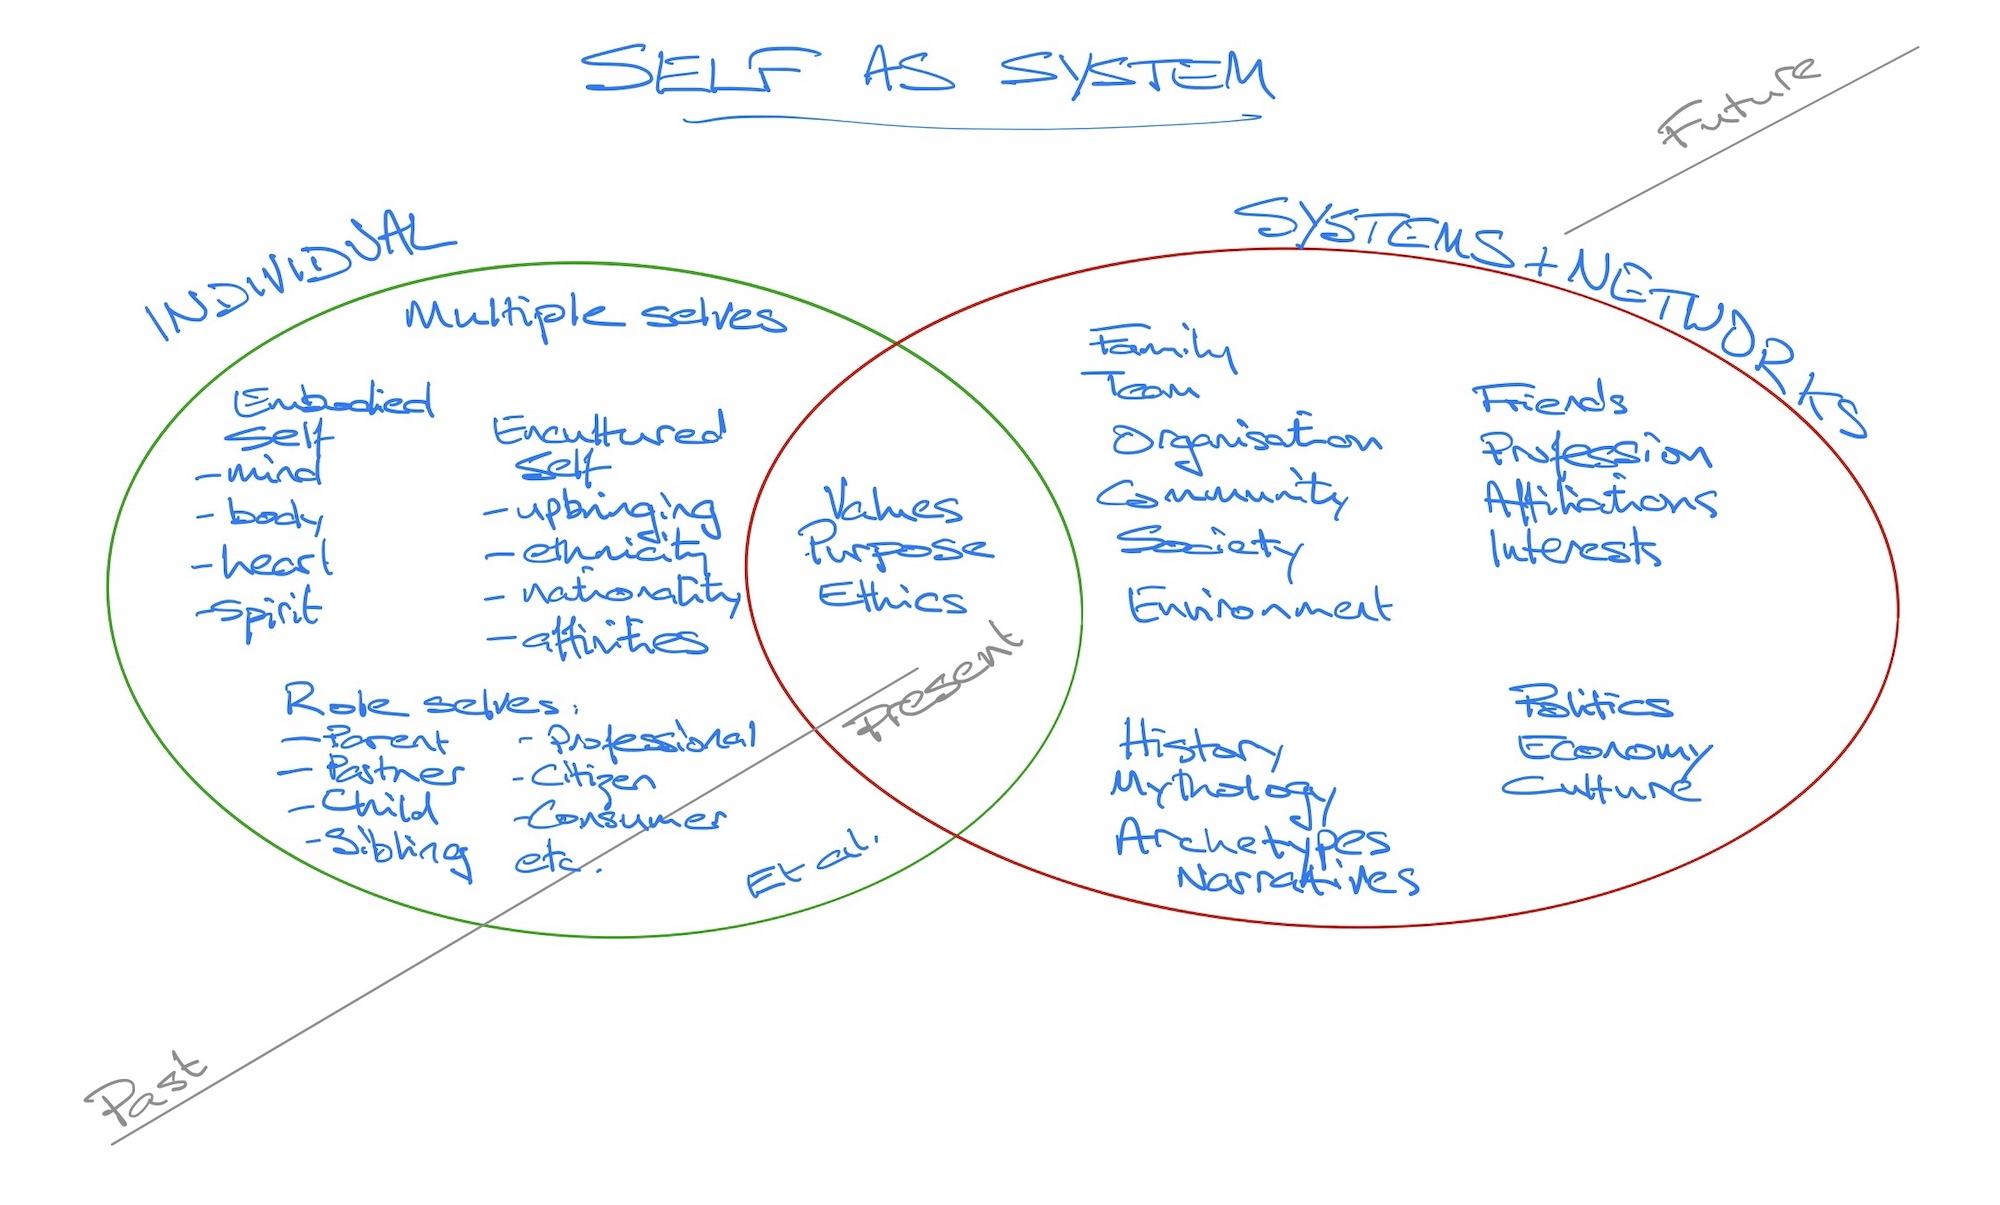 Self as system